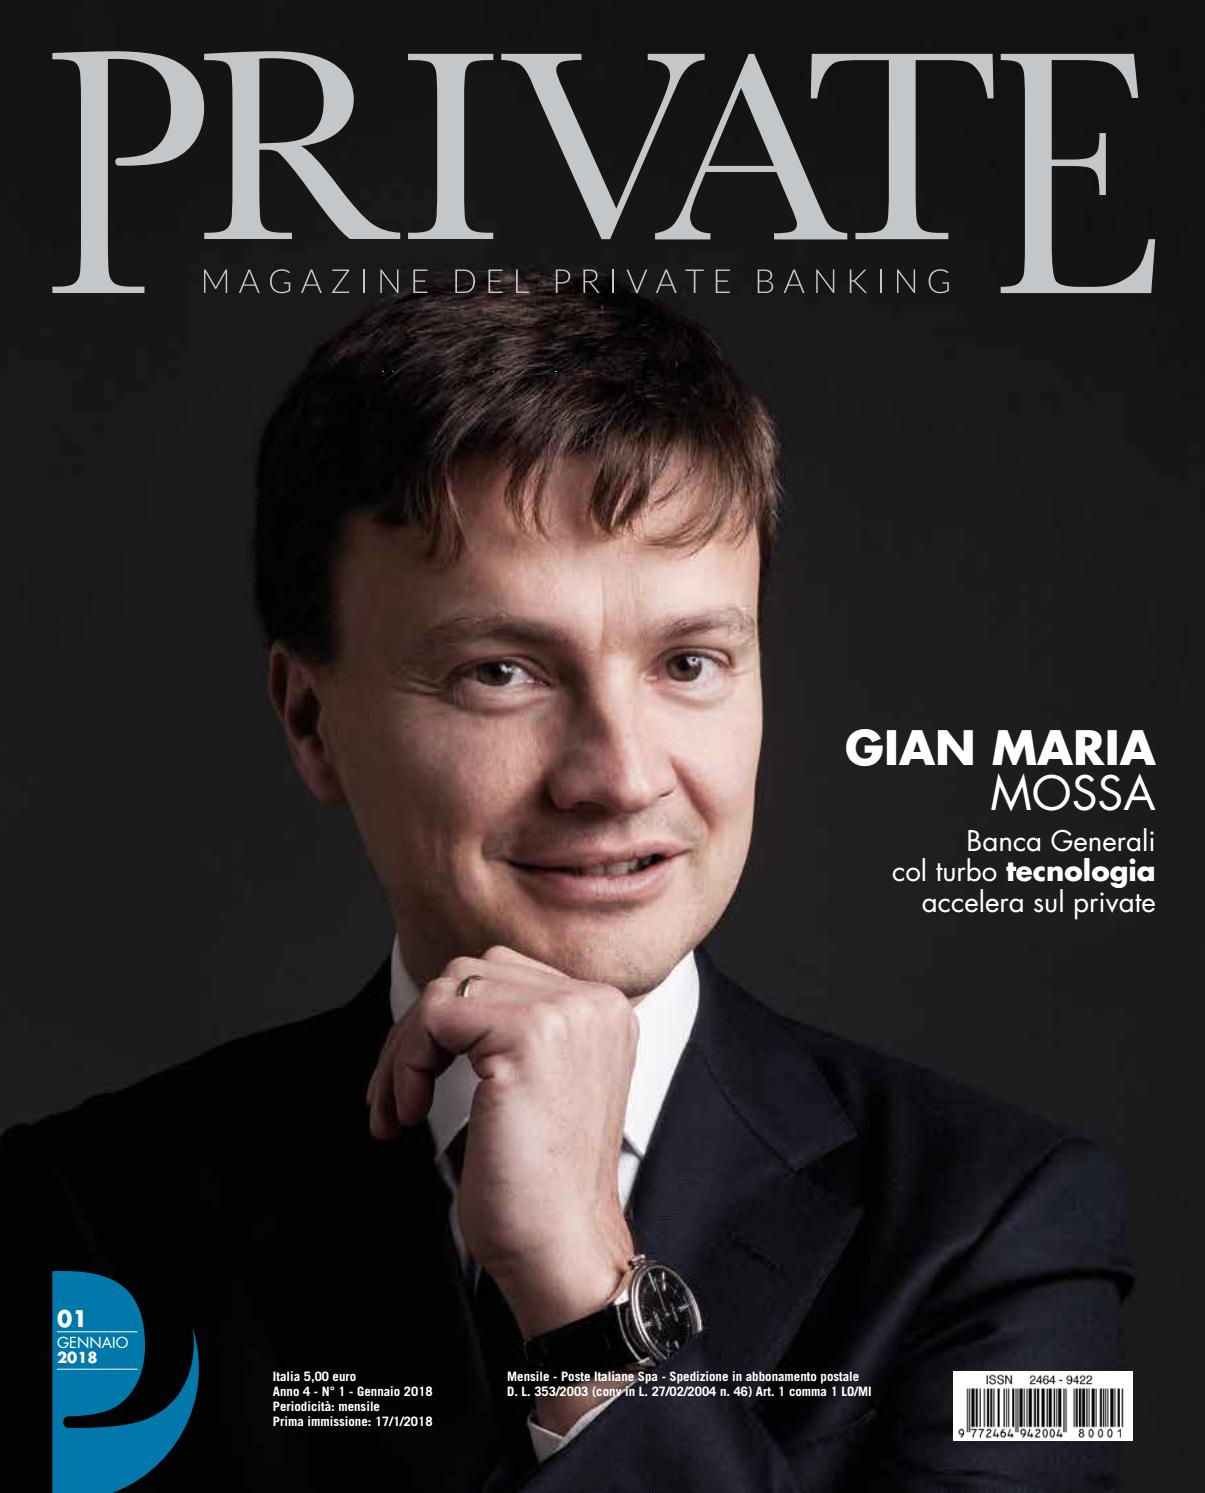 53561dd3d0 PRIVATE 01 - GIAN MARIA MOSSA by Blue Financial Communication - issuu